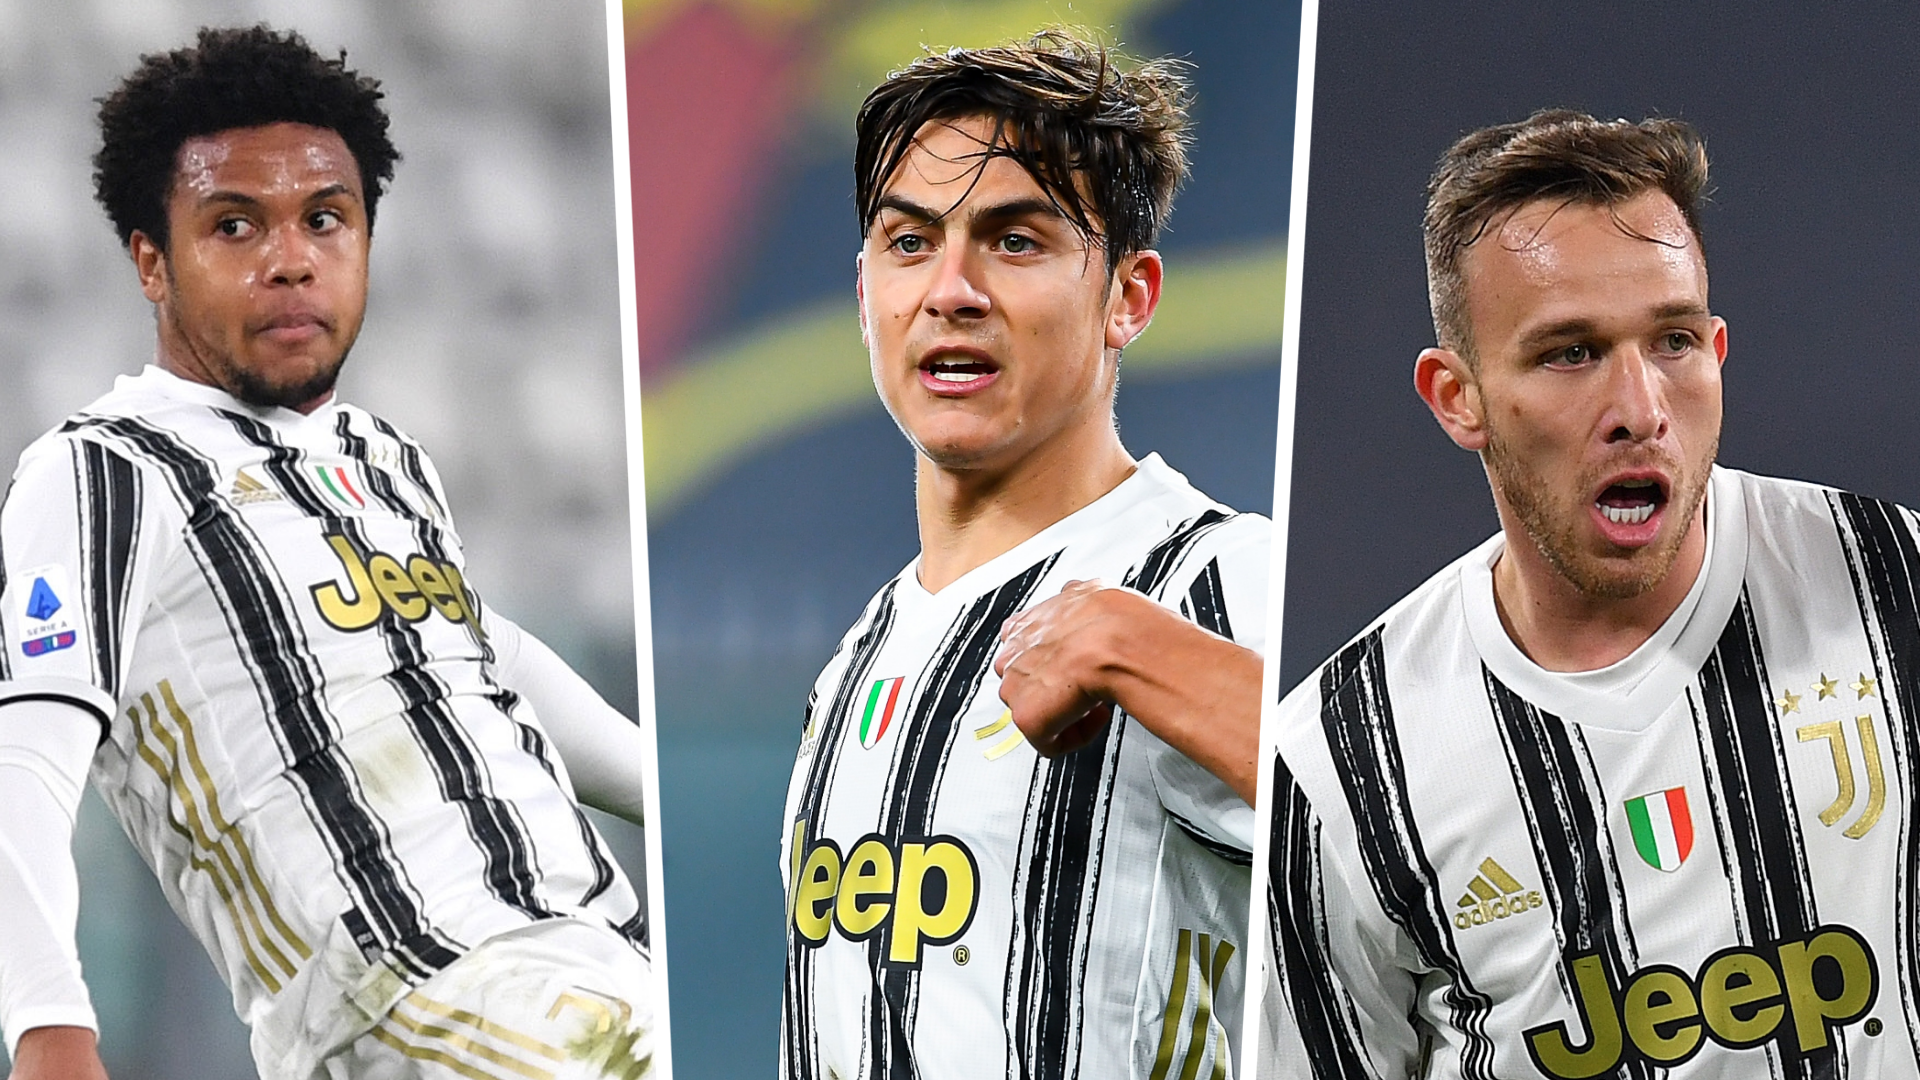 McKennie, Arthur and Dybala to return for Juventus against Napoli after being suspended for lockdown-breaking party